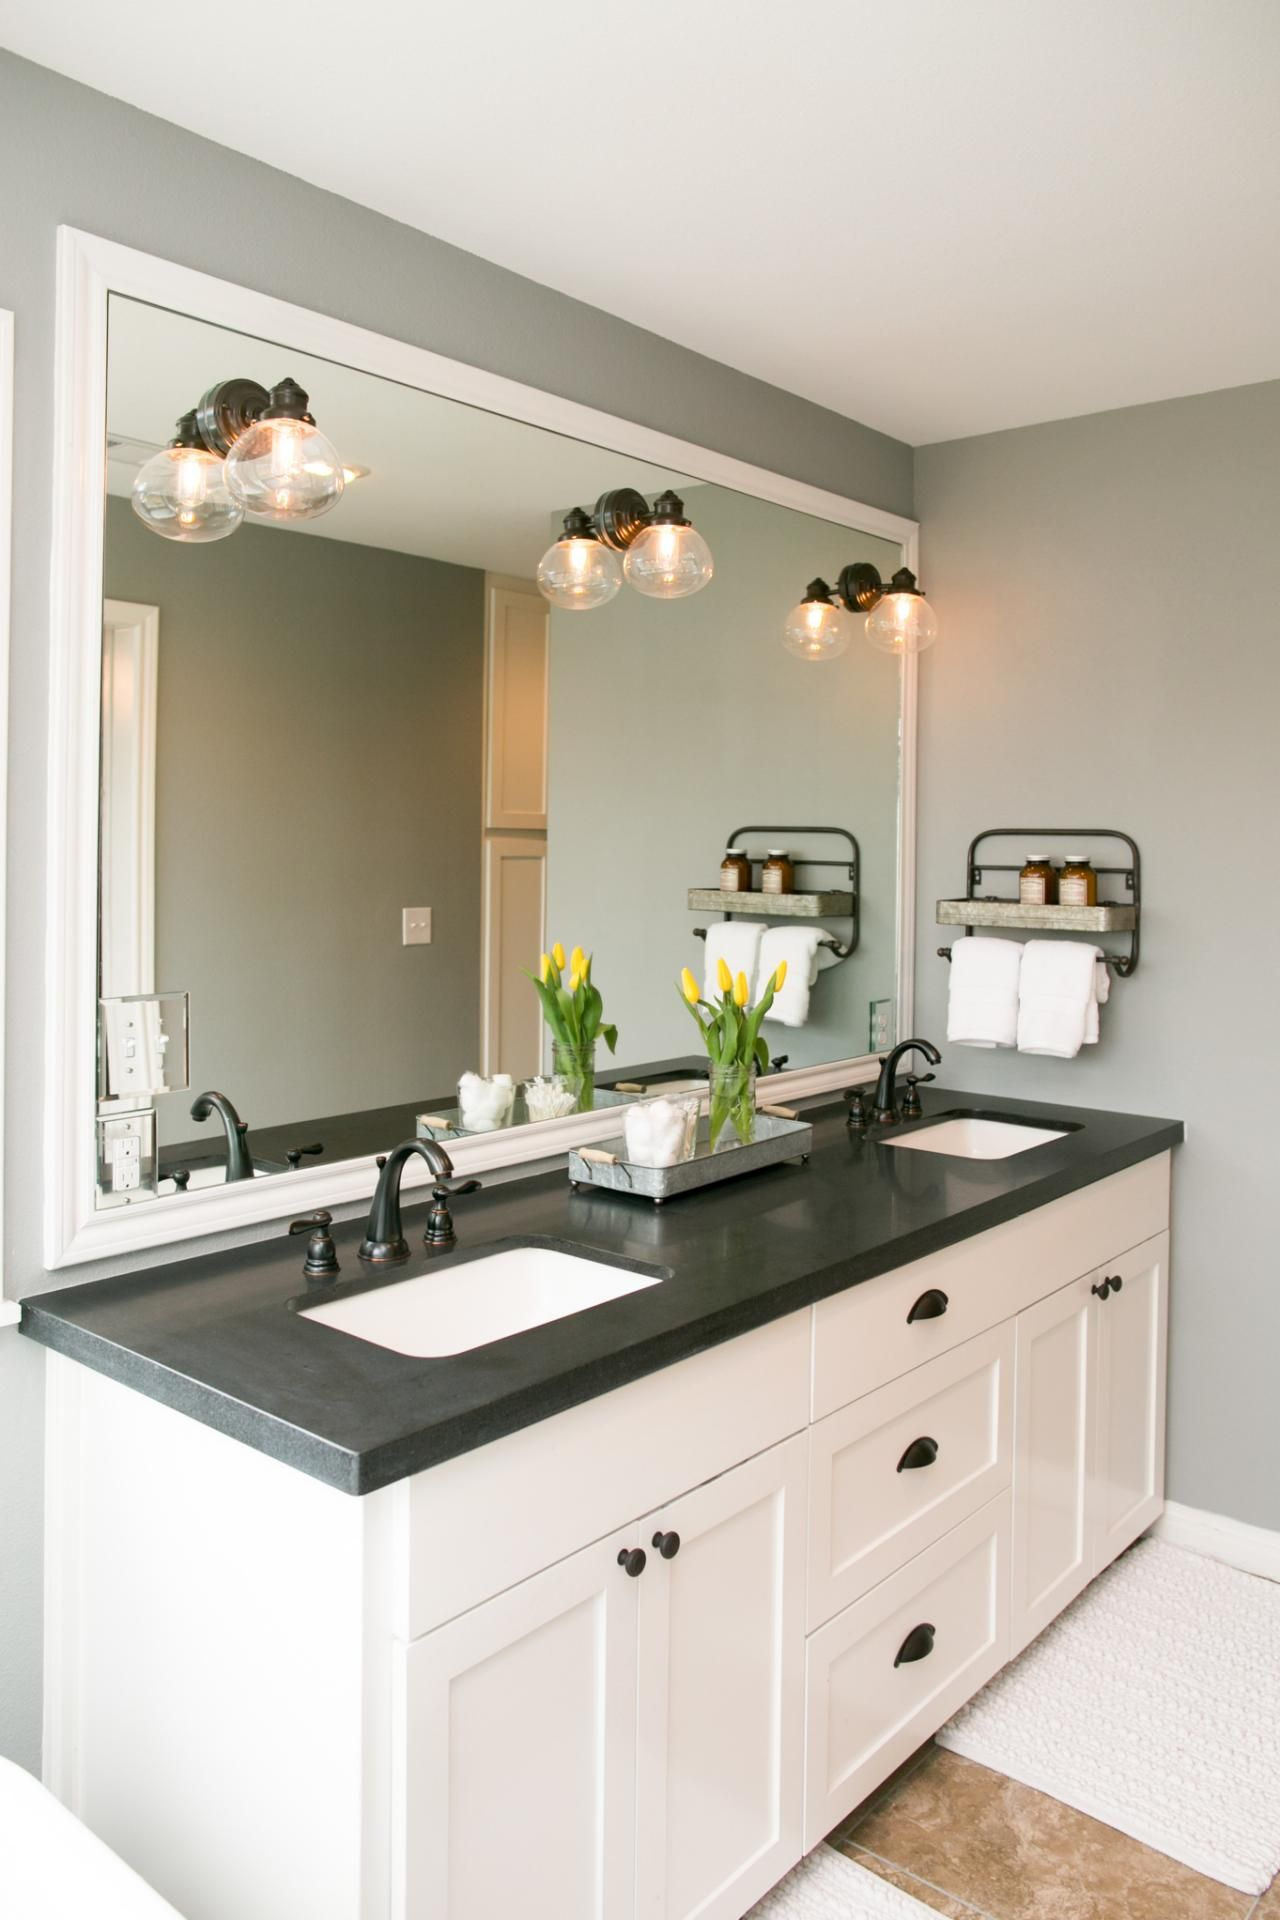 Double Vanity Sinks White Vanity Bathroom Bathroom Countertops